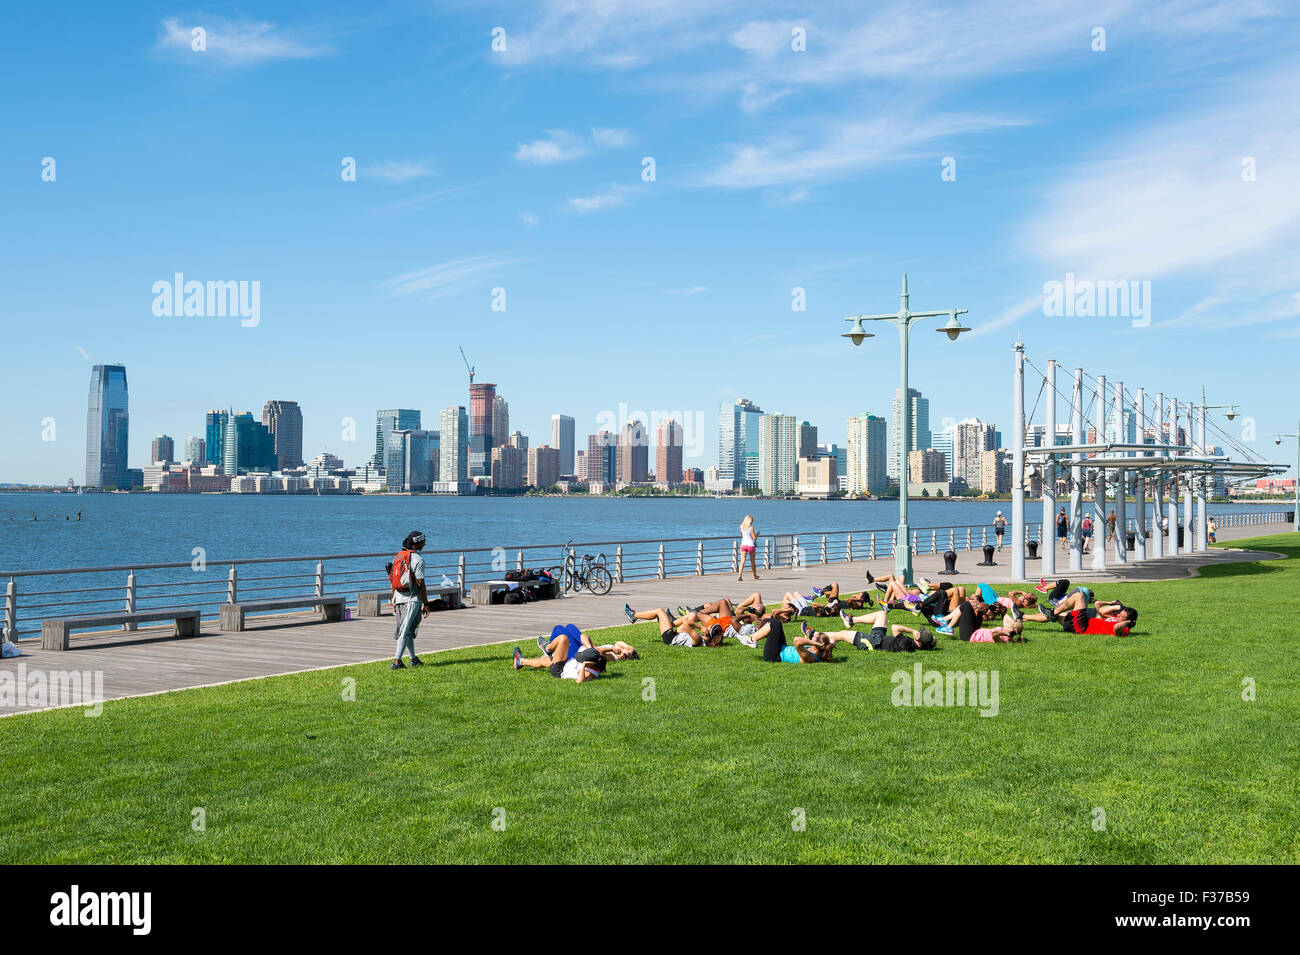 NEW YORK CITY, USA - AUGUST 29, 2015: Personal trainer leads group boot camp fitness class on the grass near the - Stock Image